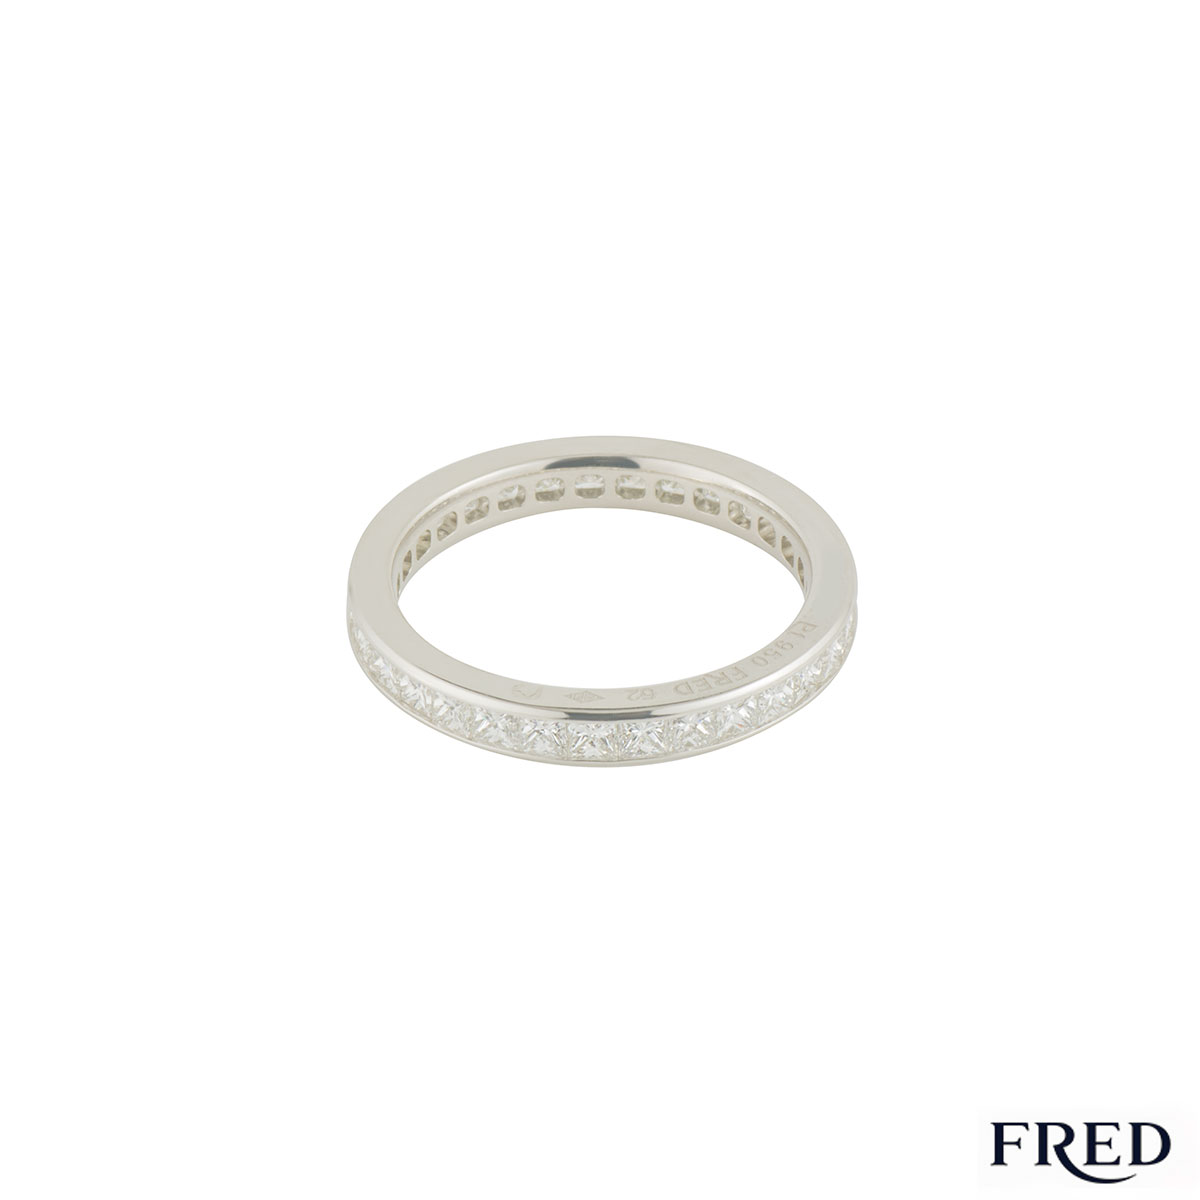 Fred Platinum Full Diamond Eternity Ring 1.92ct G+/VS+